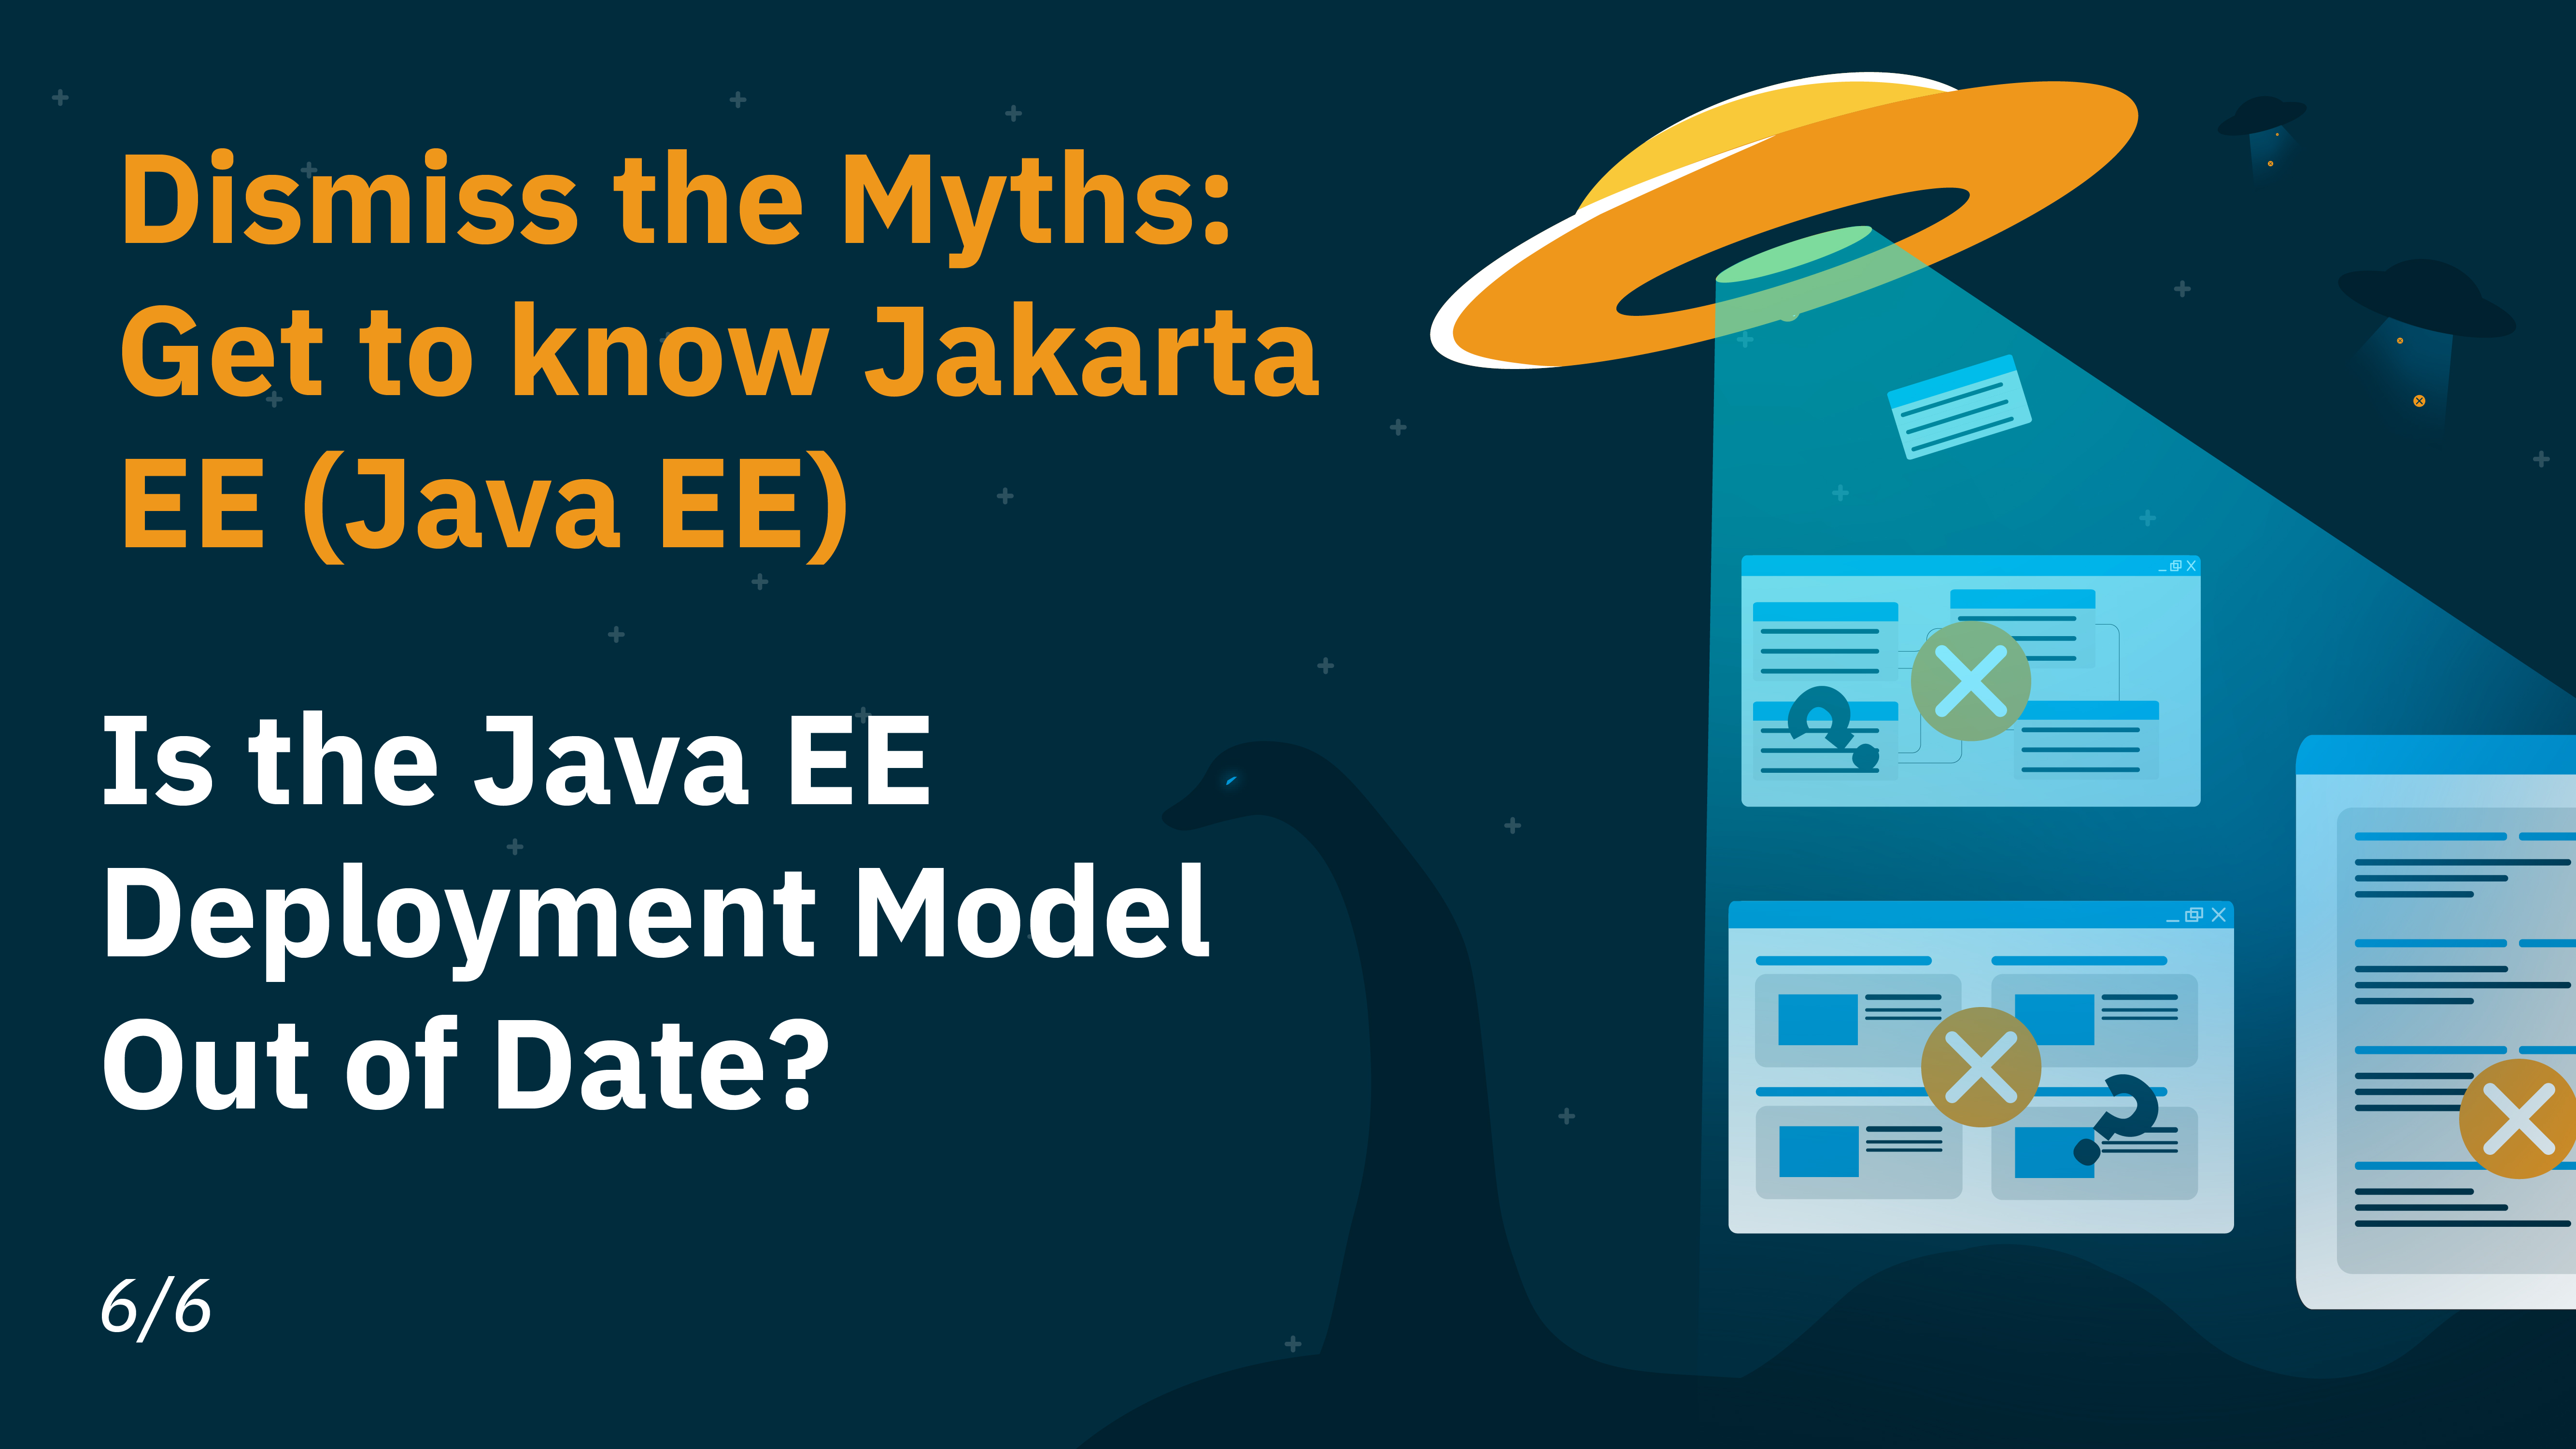 Is the Java EE deployment model out of date?